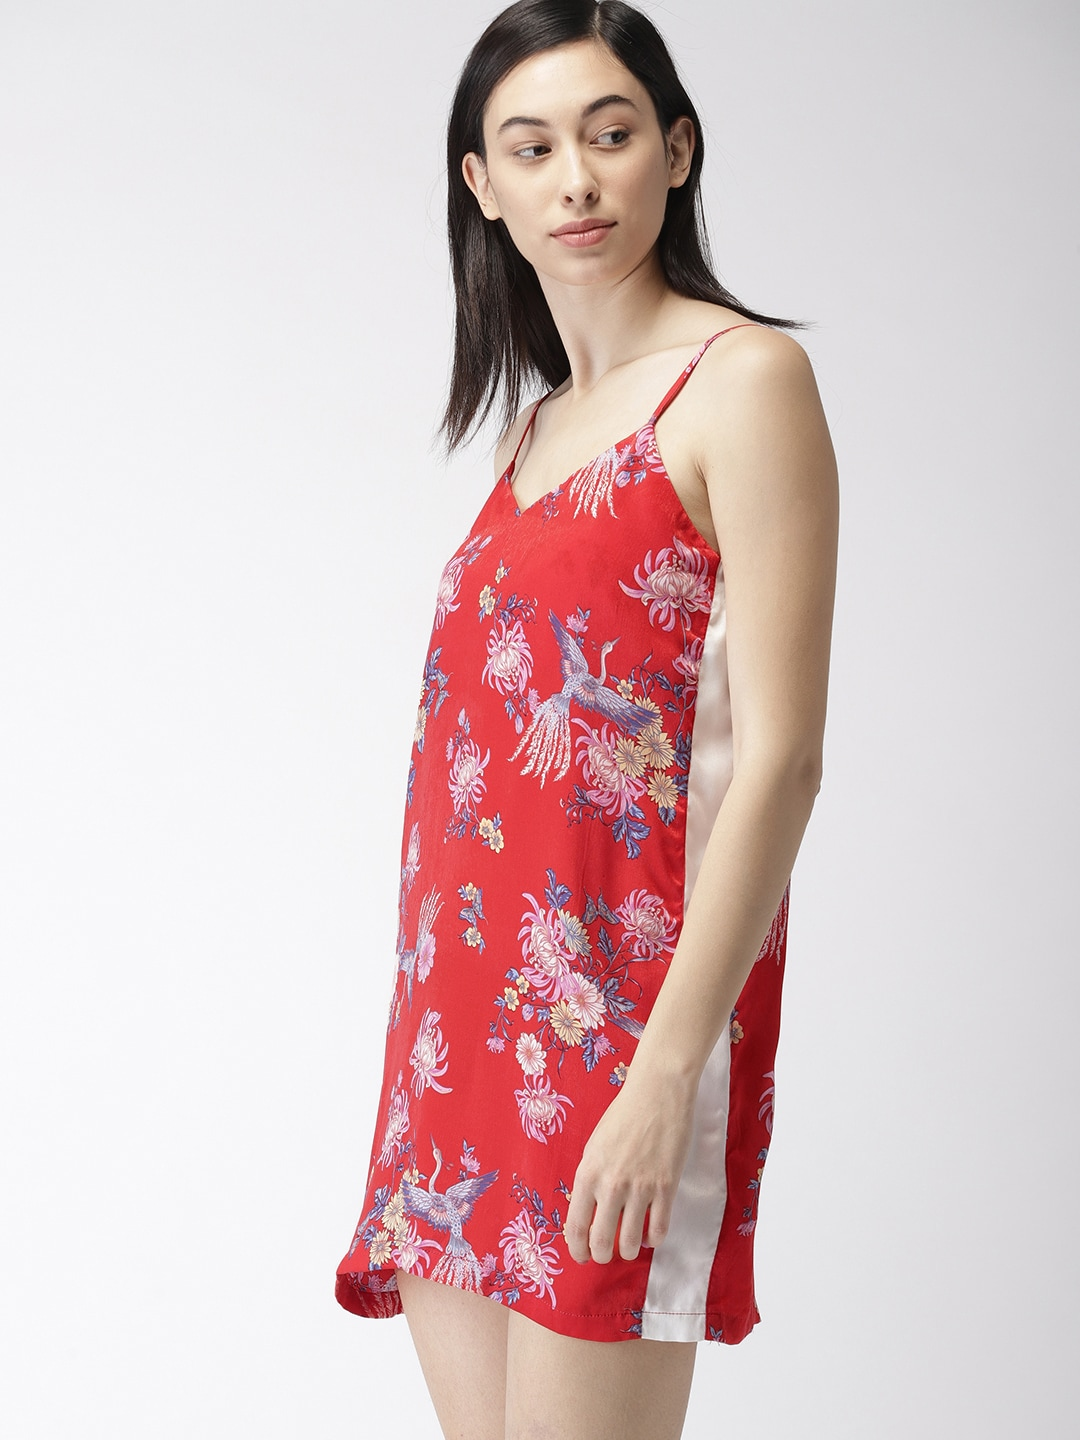 805b4b4da3c8 Forever 21 - Exclusive Forever 21 Online Store in India at Myntra